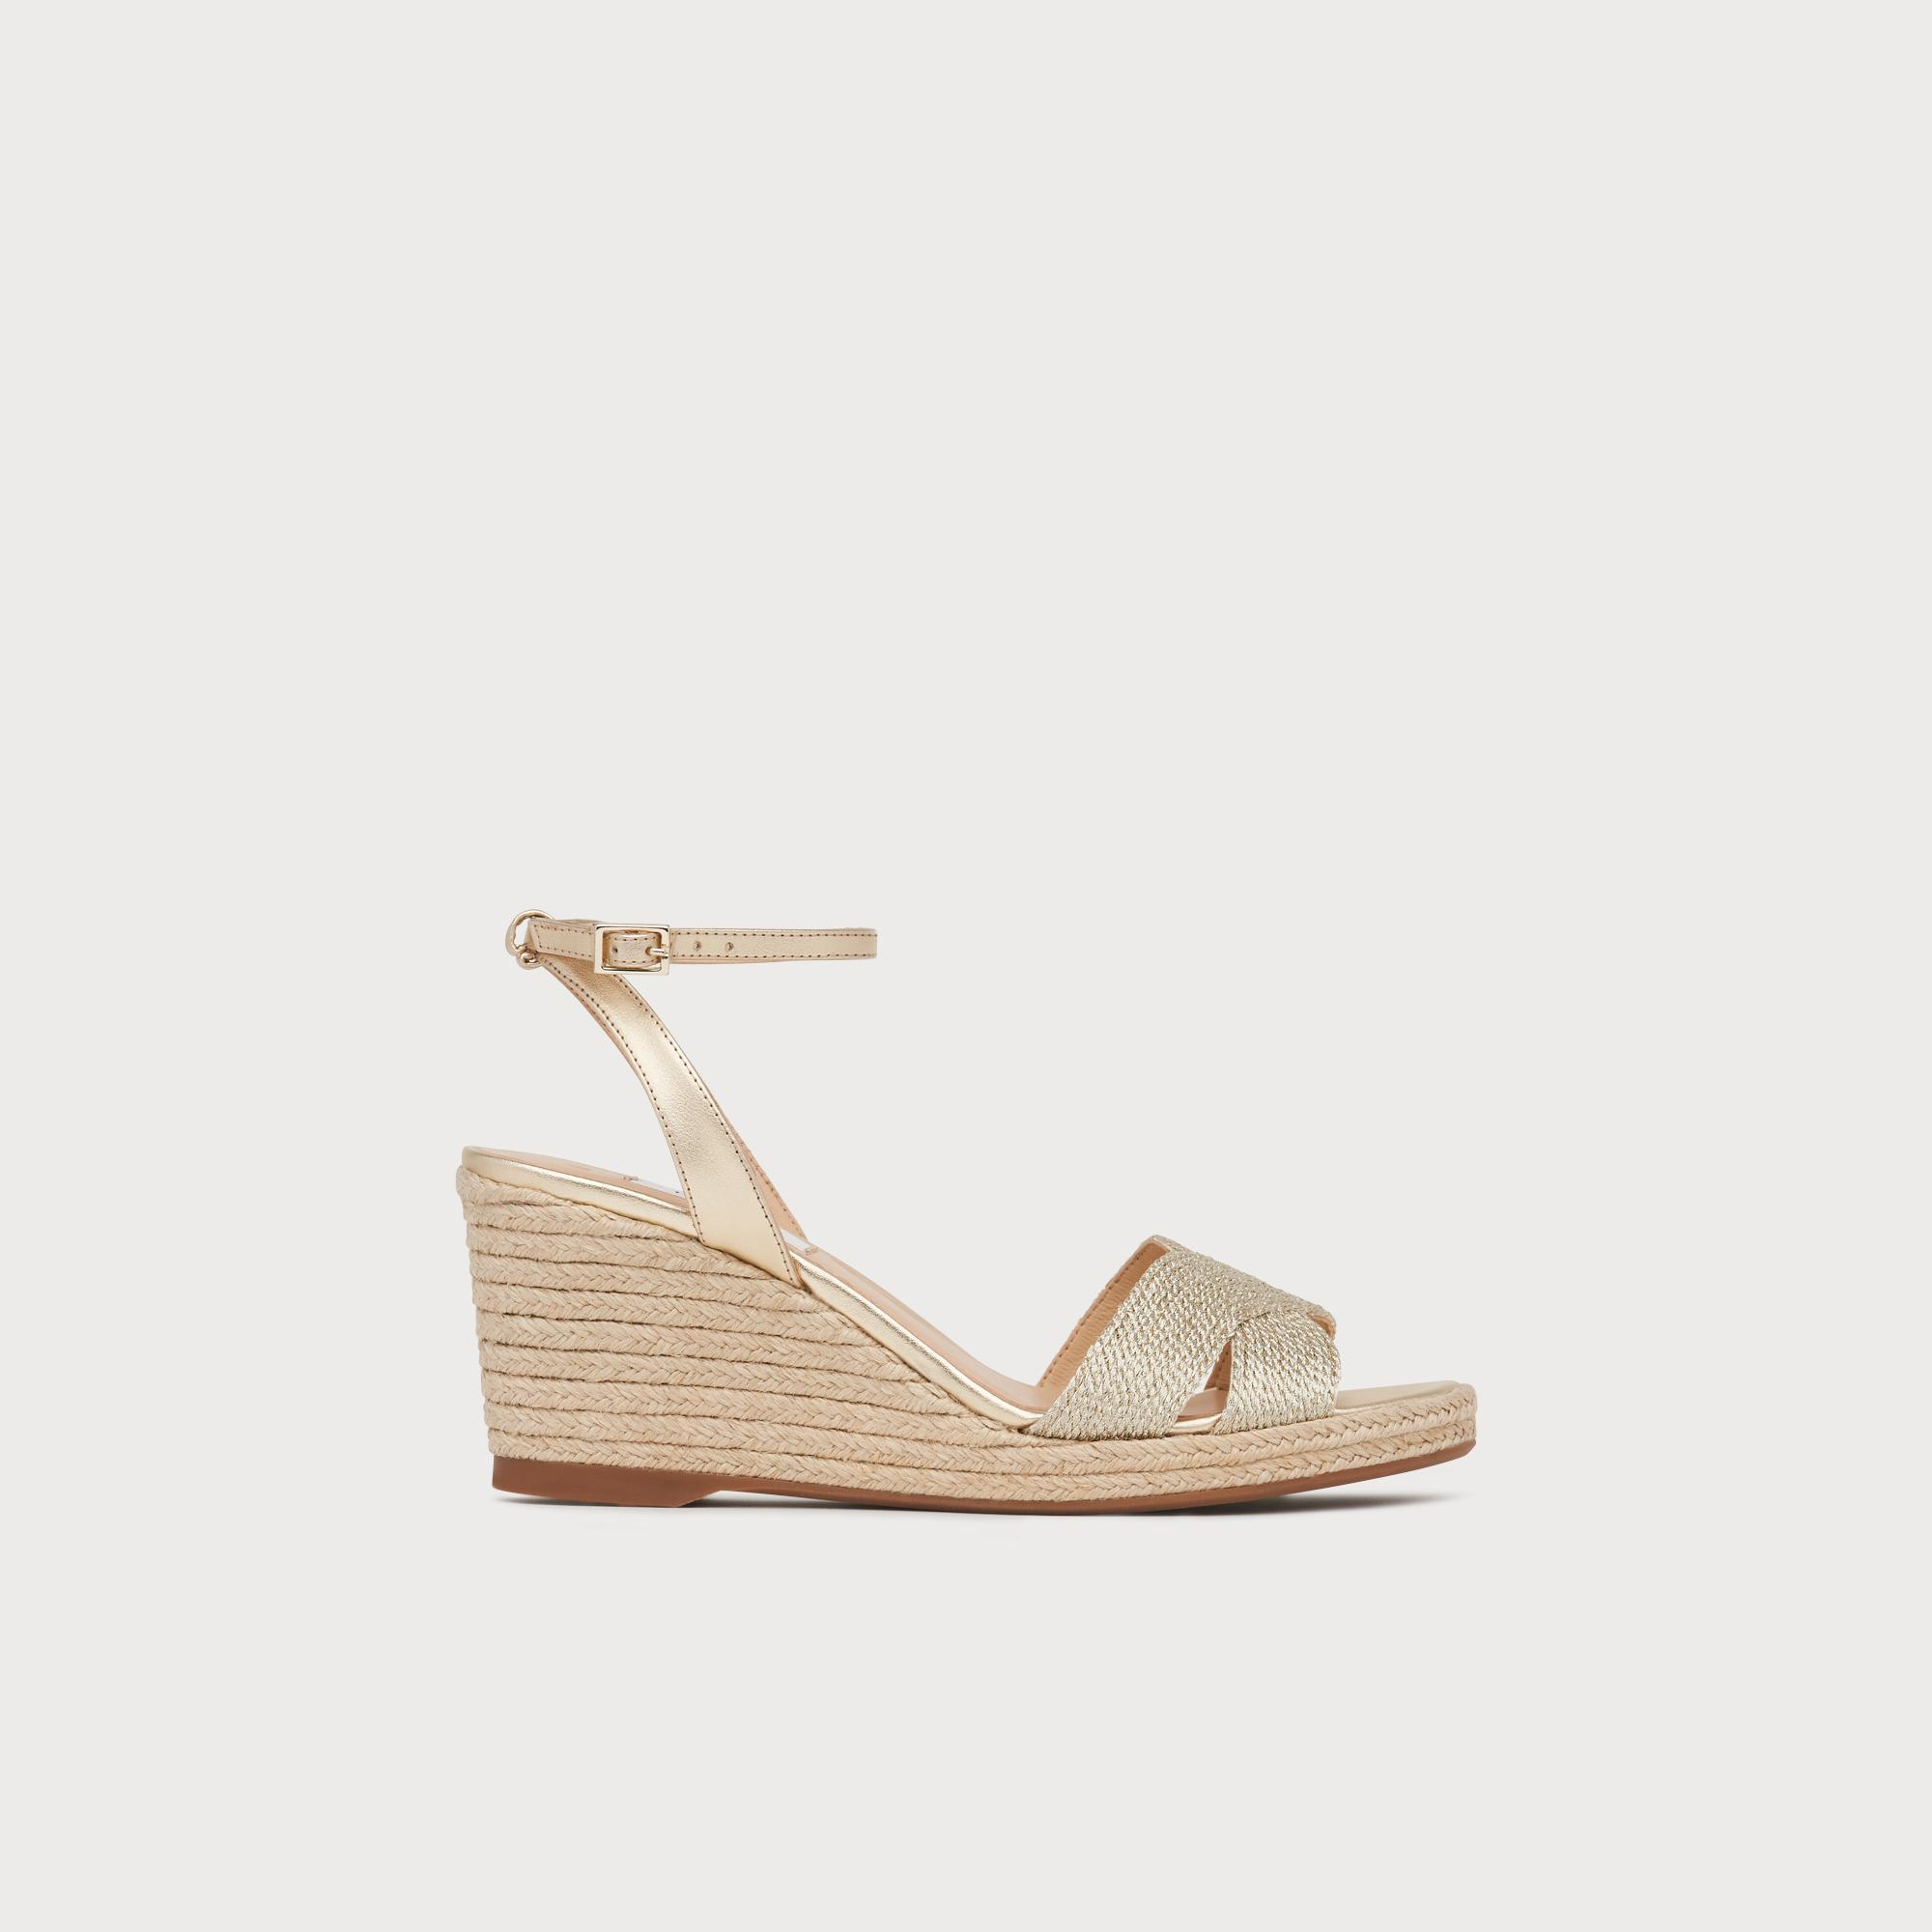 04f3243ca92f Mabella Gold Rope Wedge Sandals